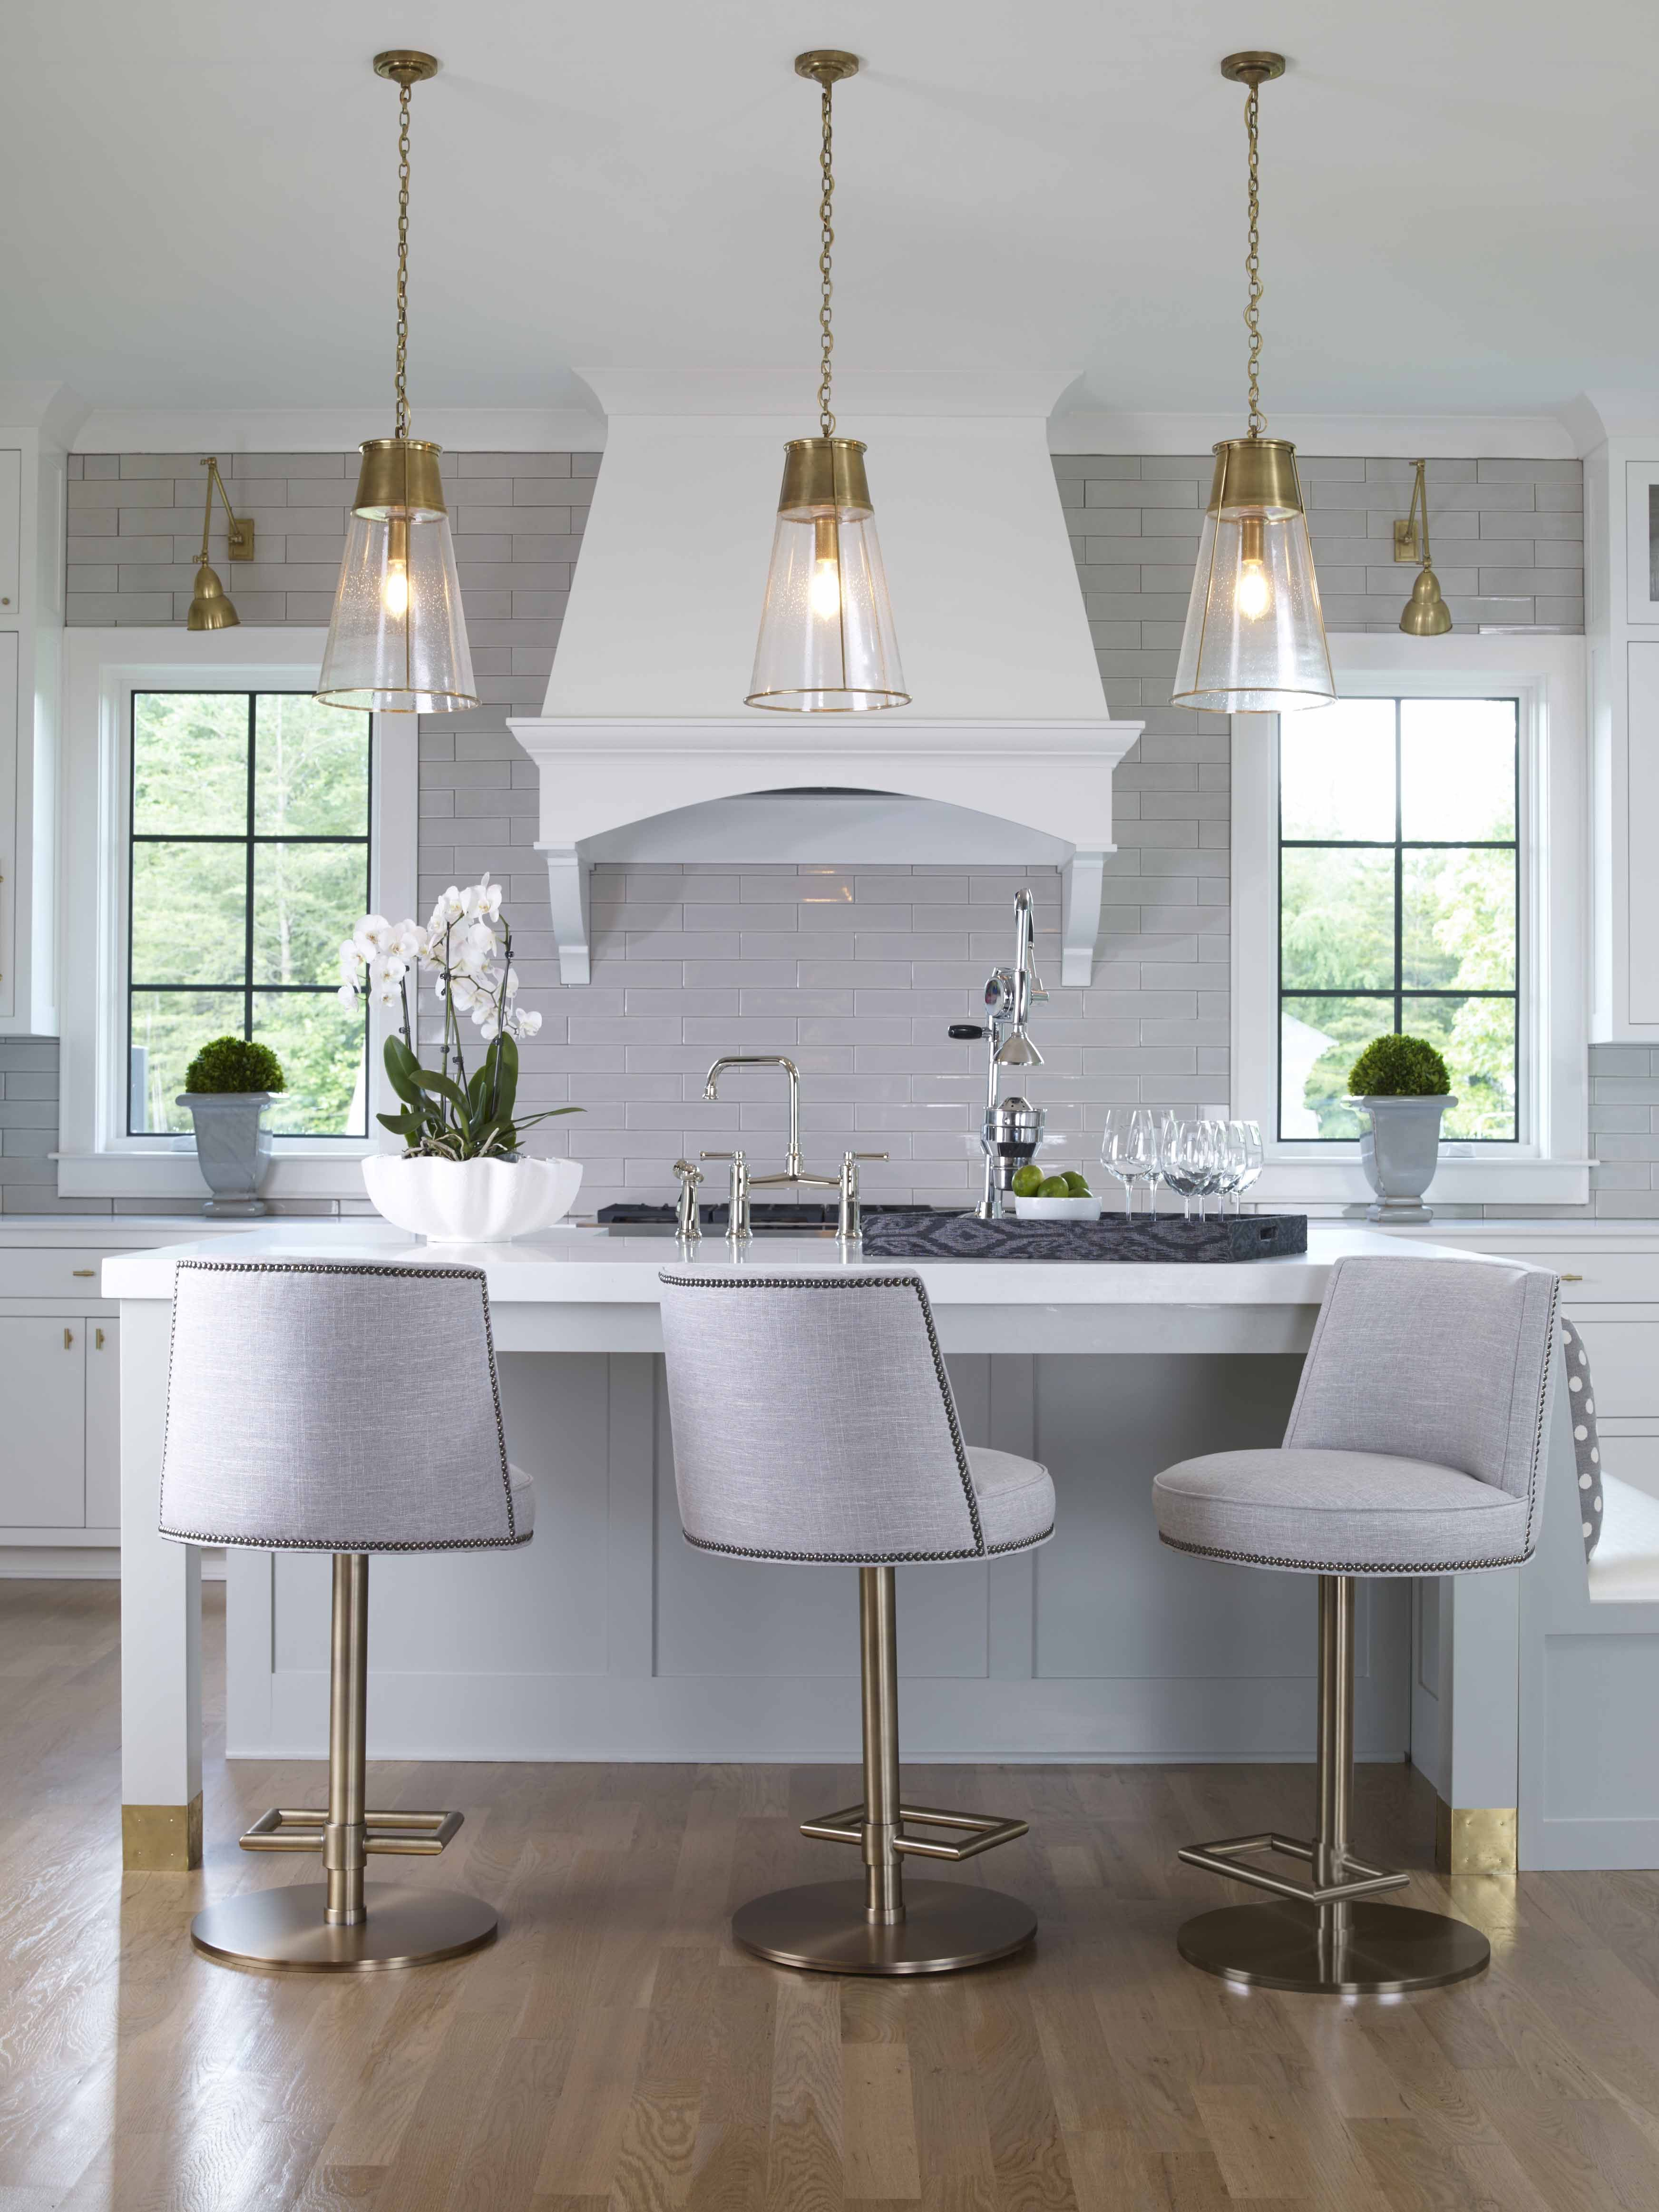 Dixon Smith Interiors - Live Your Vision with Our Interior Design Services